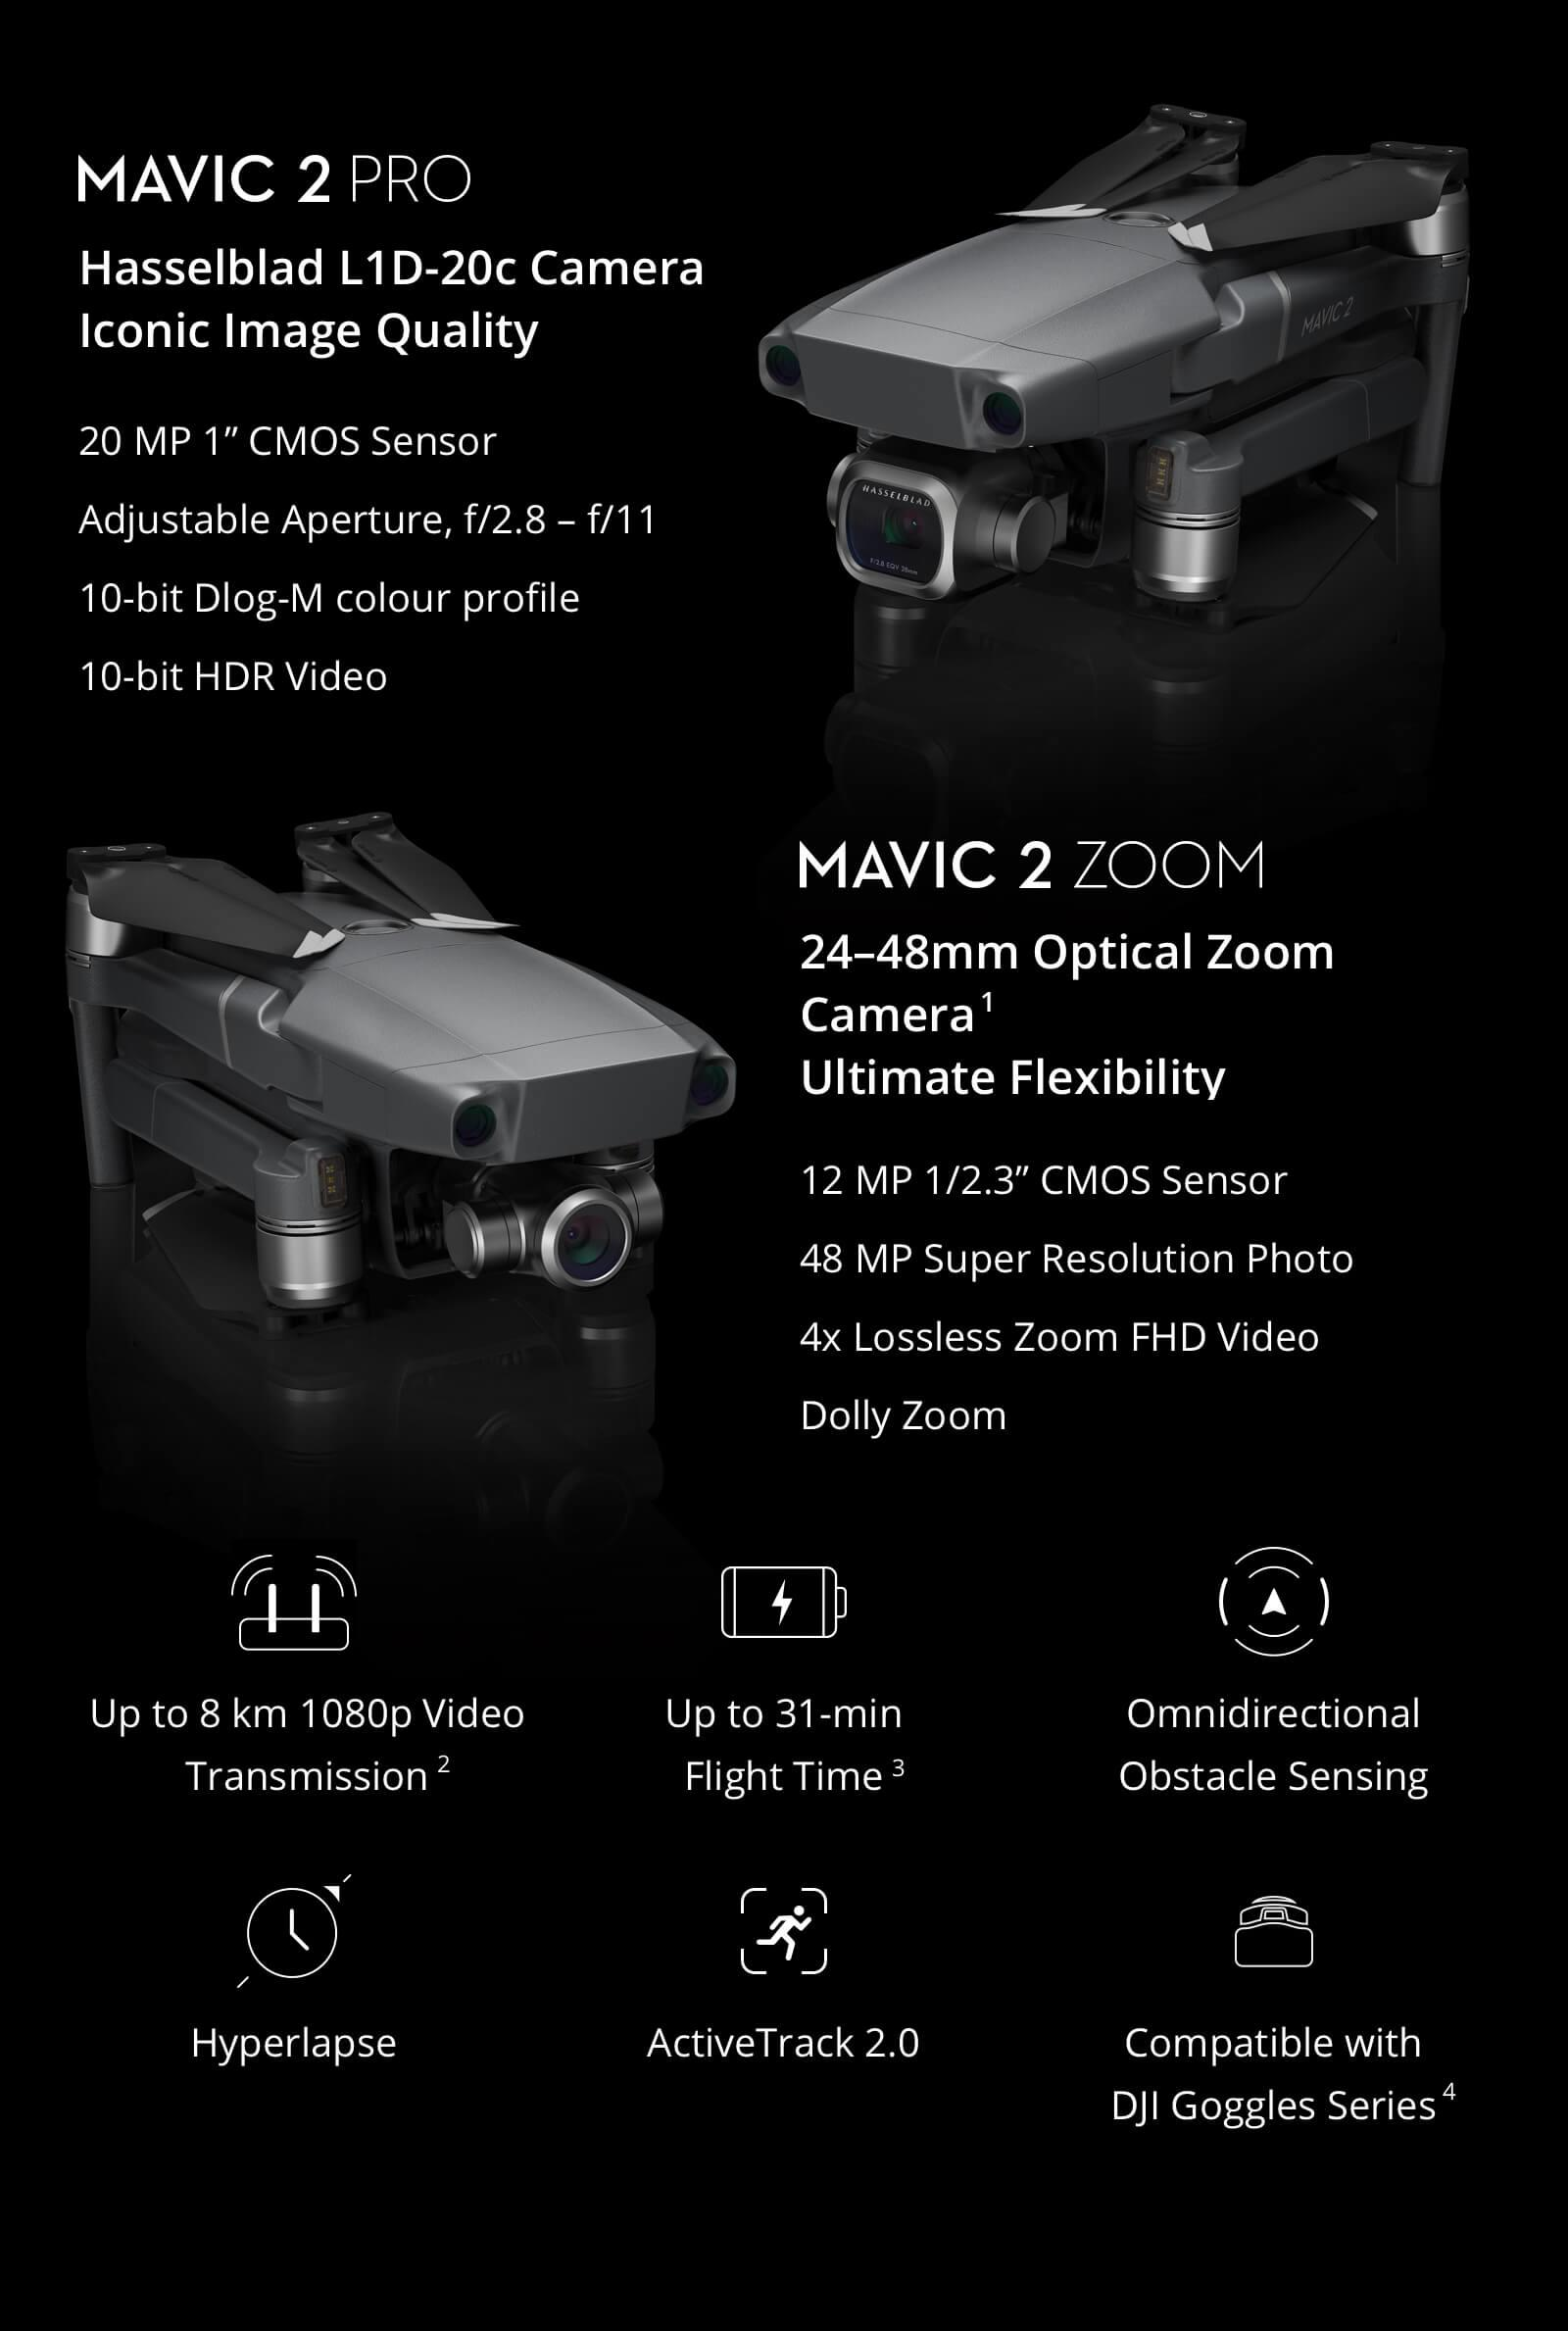 Features of the Mavic 2 Pro and Mavic 2 Zoom